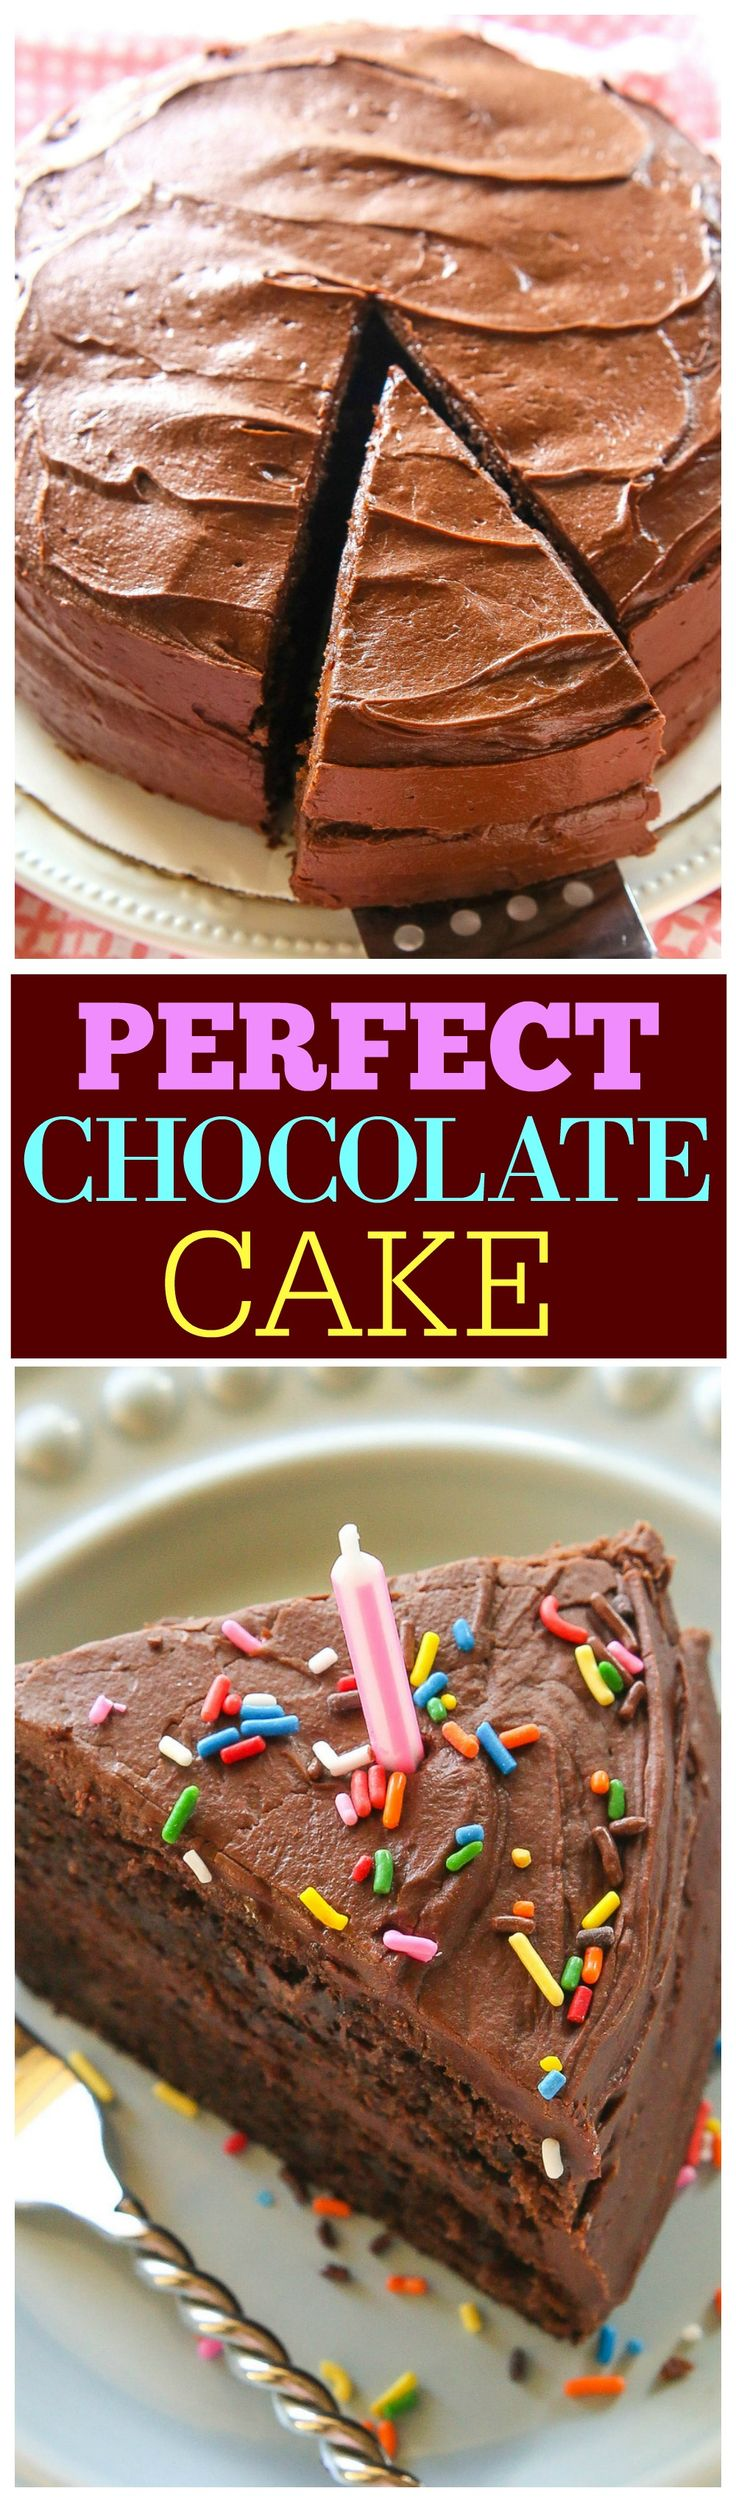 Best 25+ Hershey chocolate cakes ideas on Pinterest | Easy cake ...